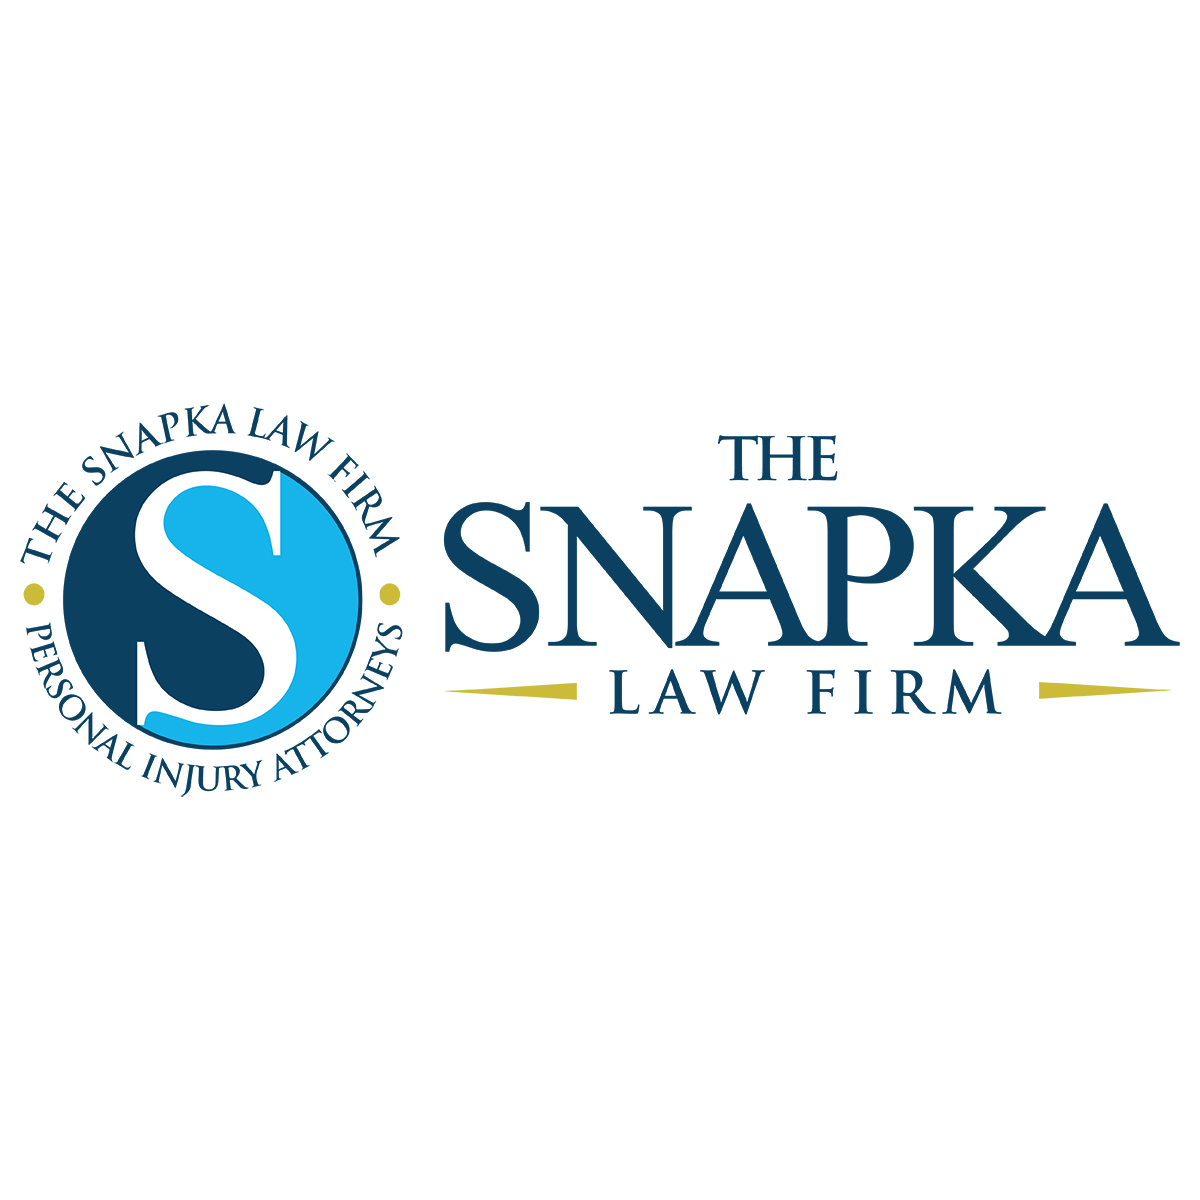 The Snapka Law Firm, Injury Lawyers Highlights What Distinguishes Their Legal Services from Other Accident Lawyers in Texas